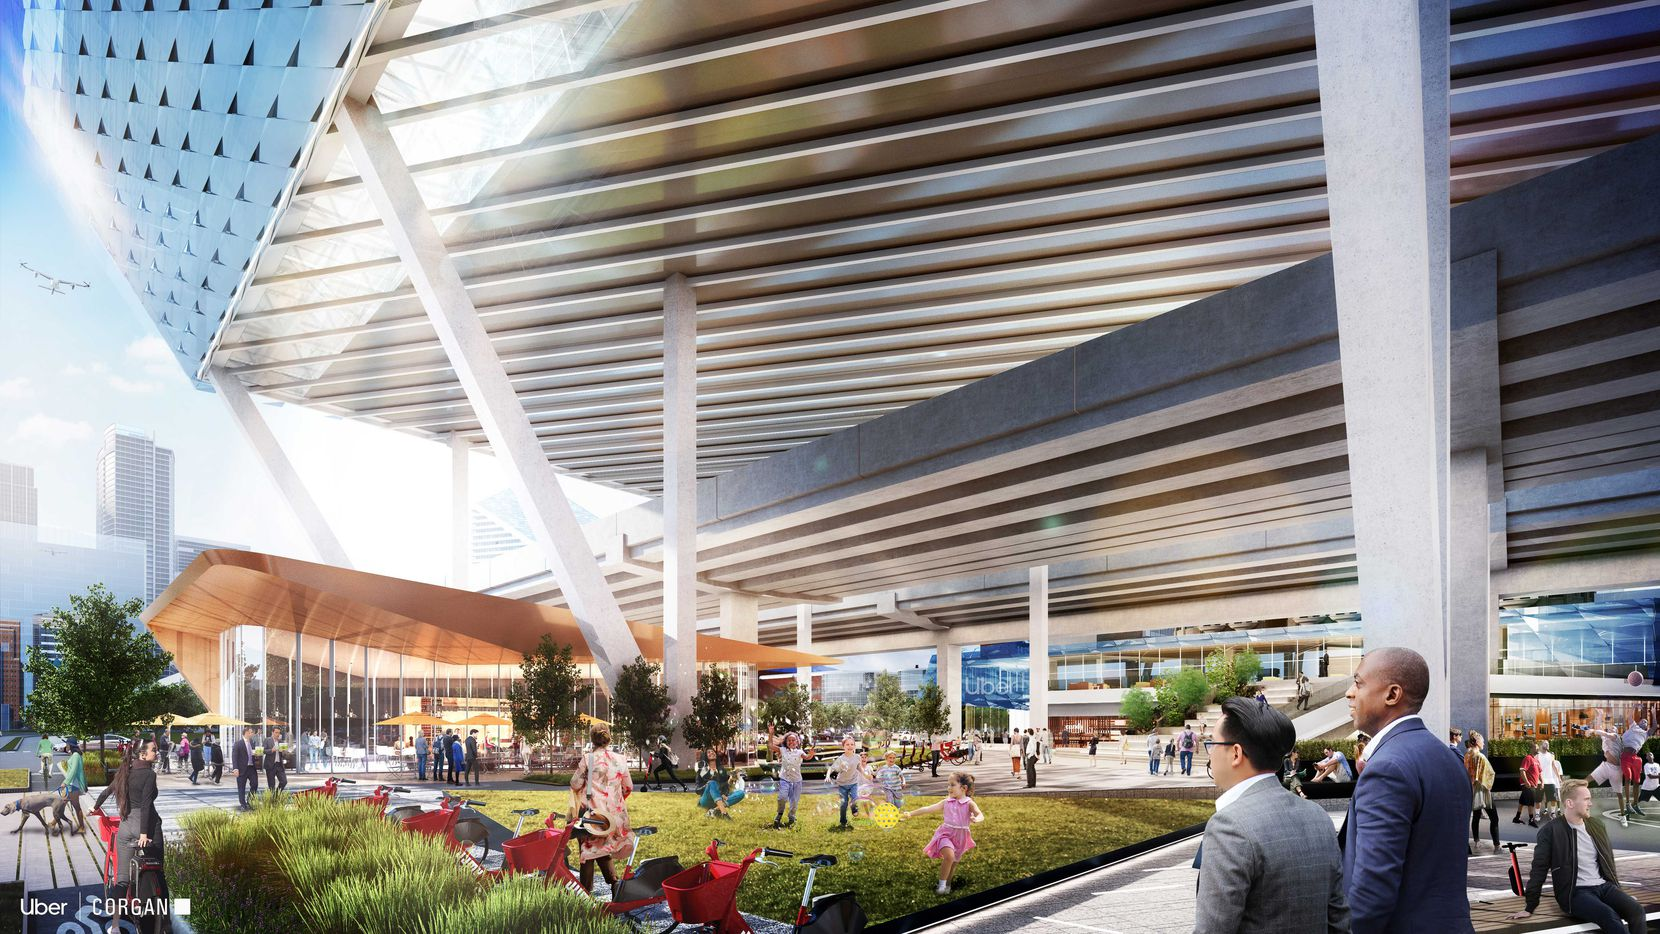 Dallas-based Corgan is one of eight architecture and engineering firms that presented renderings of skyports at the Uber Elevate Summit. In its renderings, it put public amenities like green space and a food hall below the flight deck.